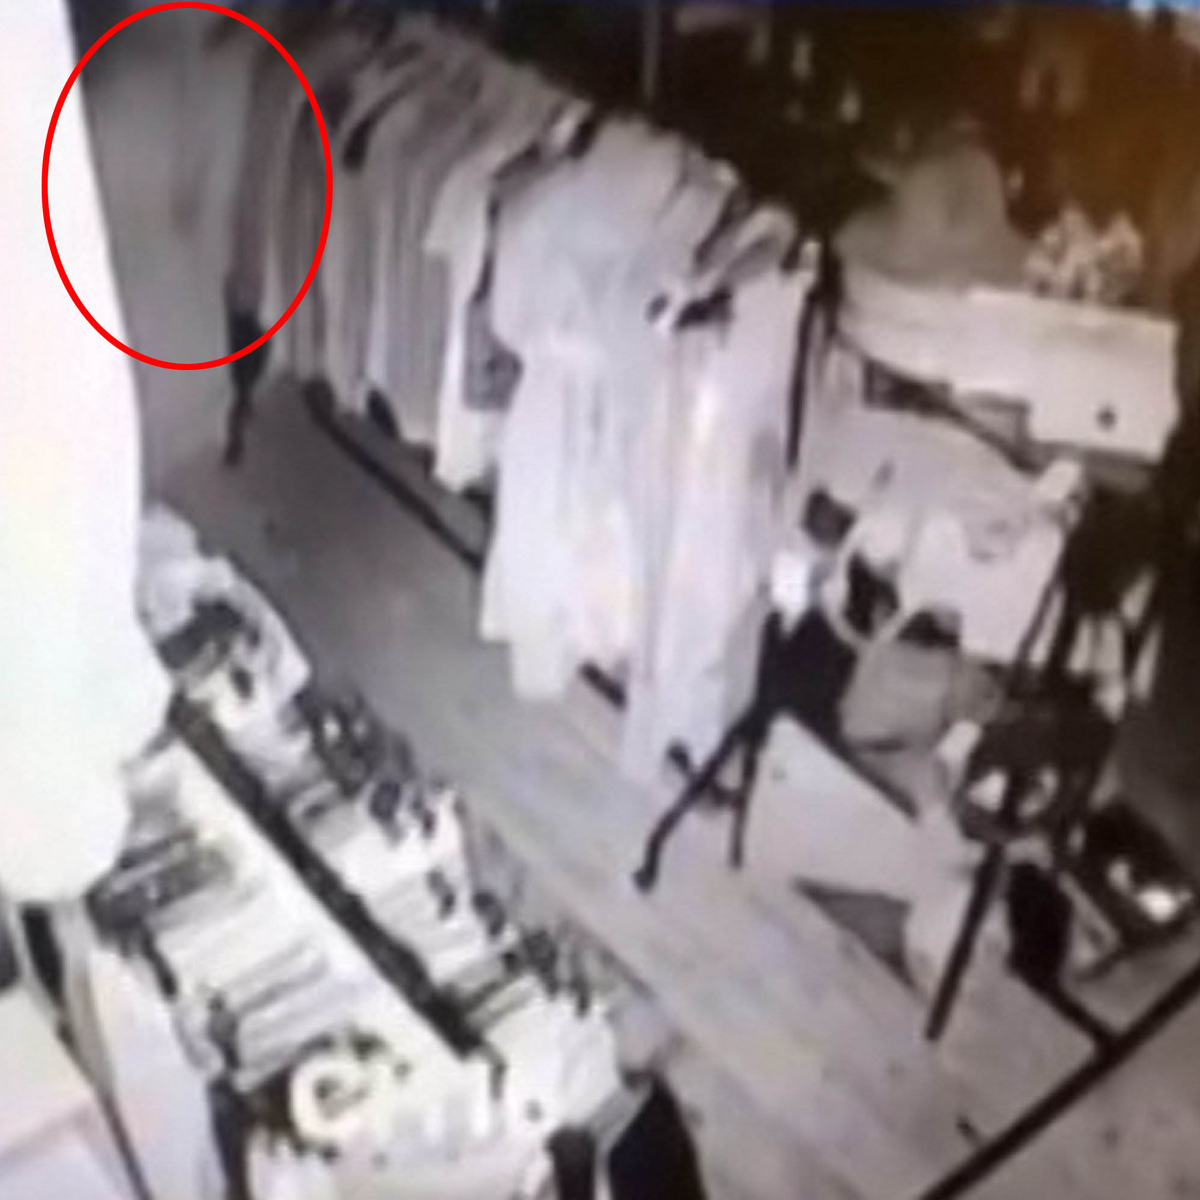 SWNS SHOP GHOST 02A Creepy As F*ck CCTV Footage Shows Ghost Wandering Around Vintage Store